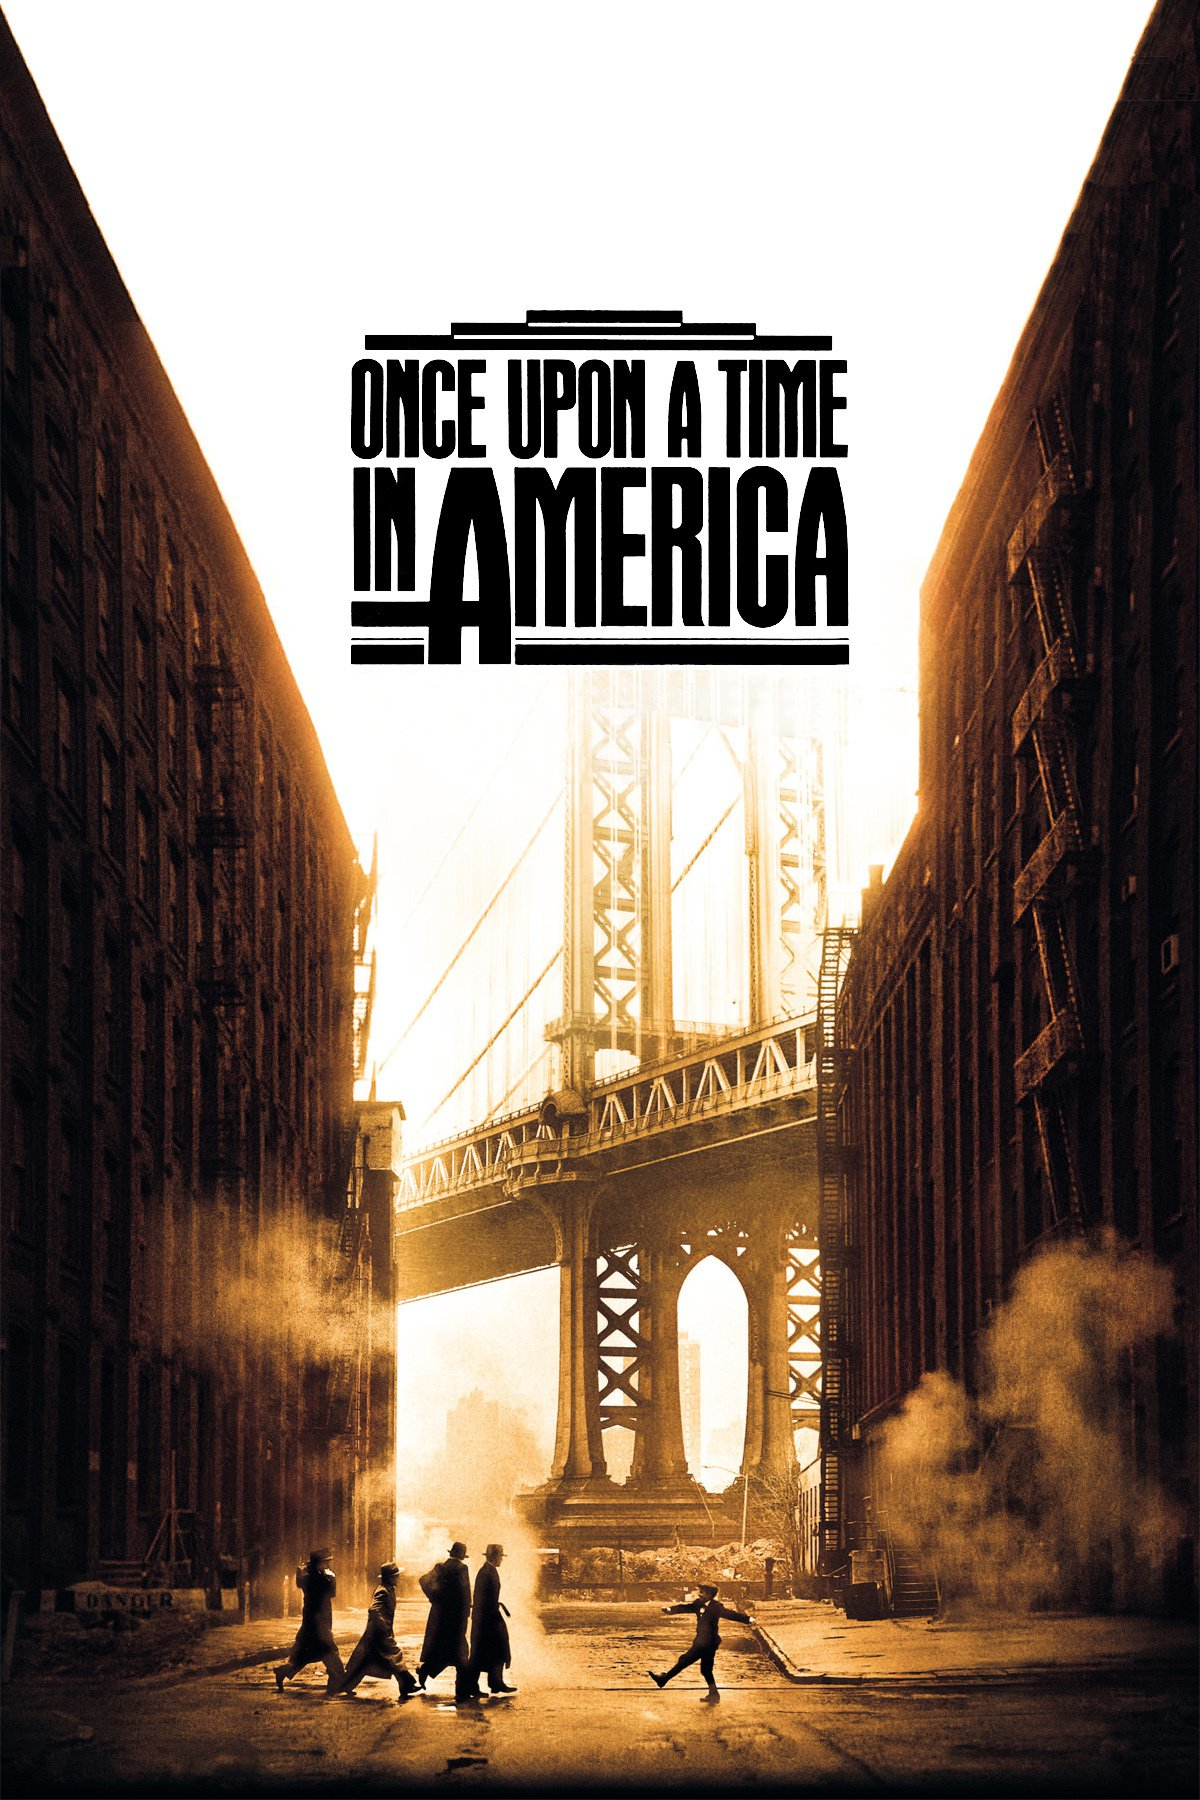 High Resolution Wallpaper Once Upon A Time In America Original